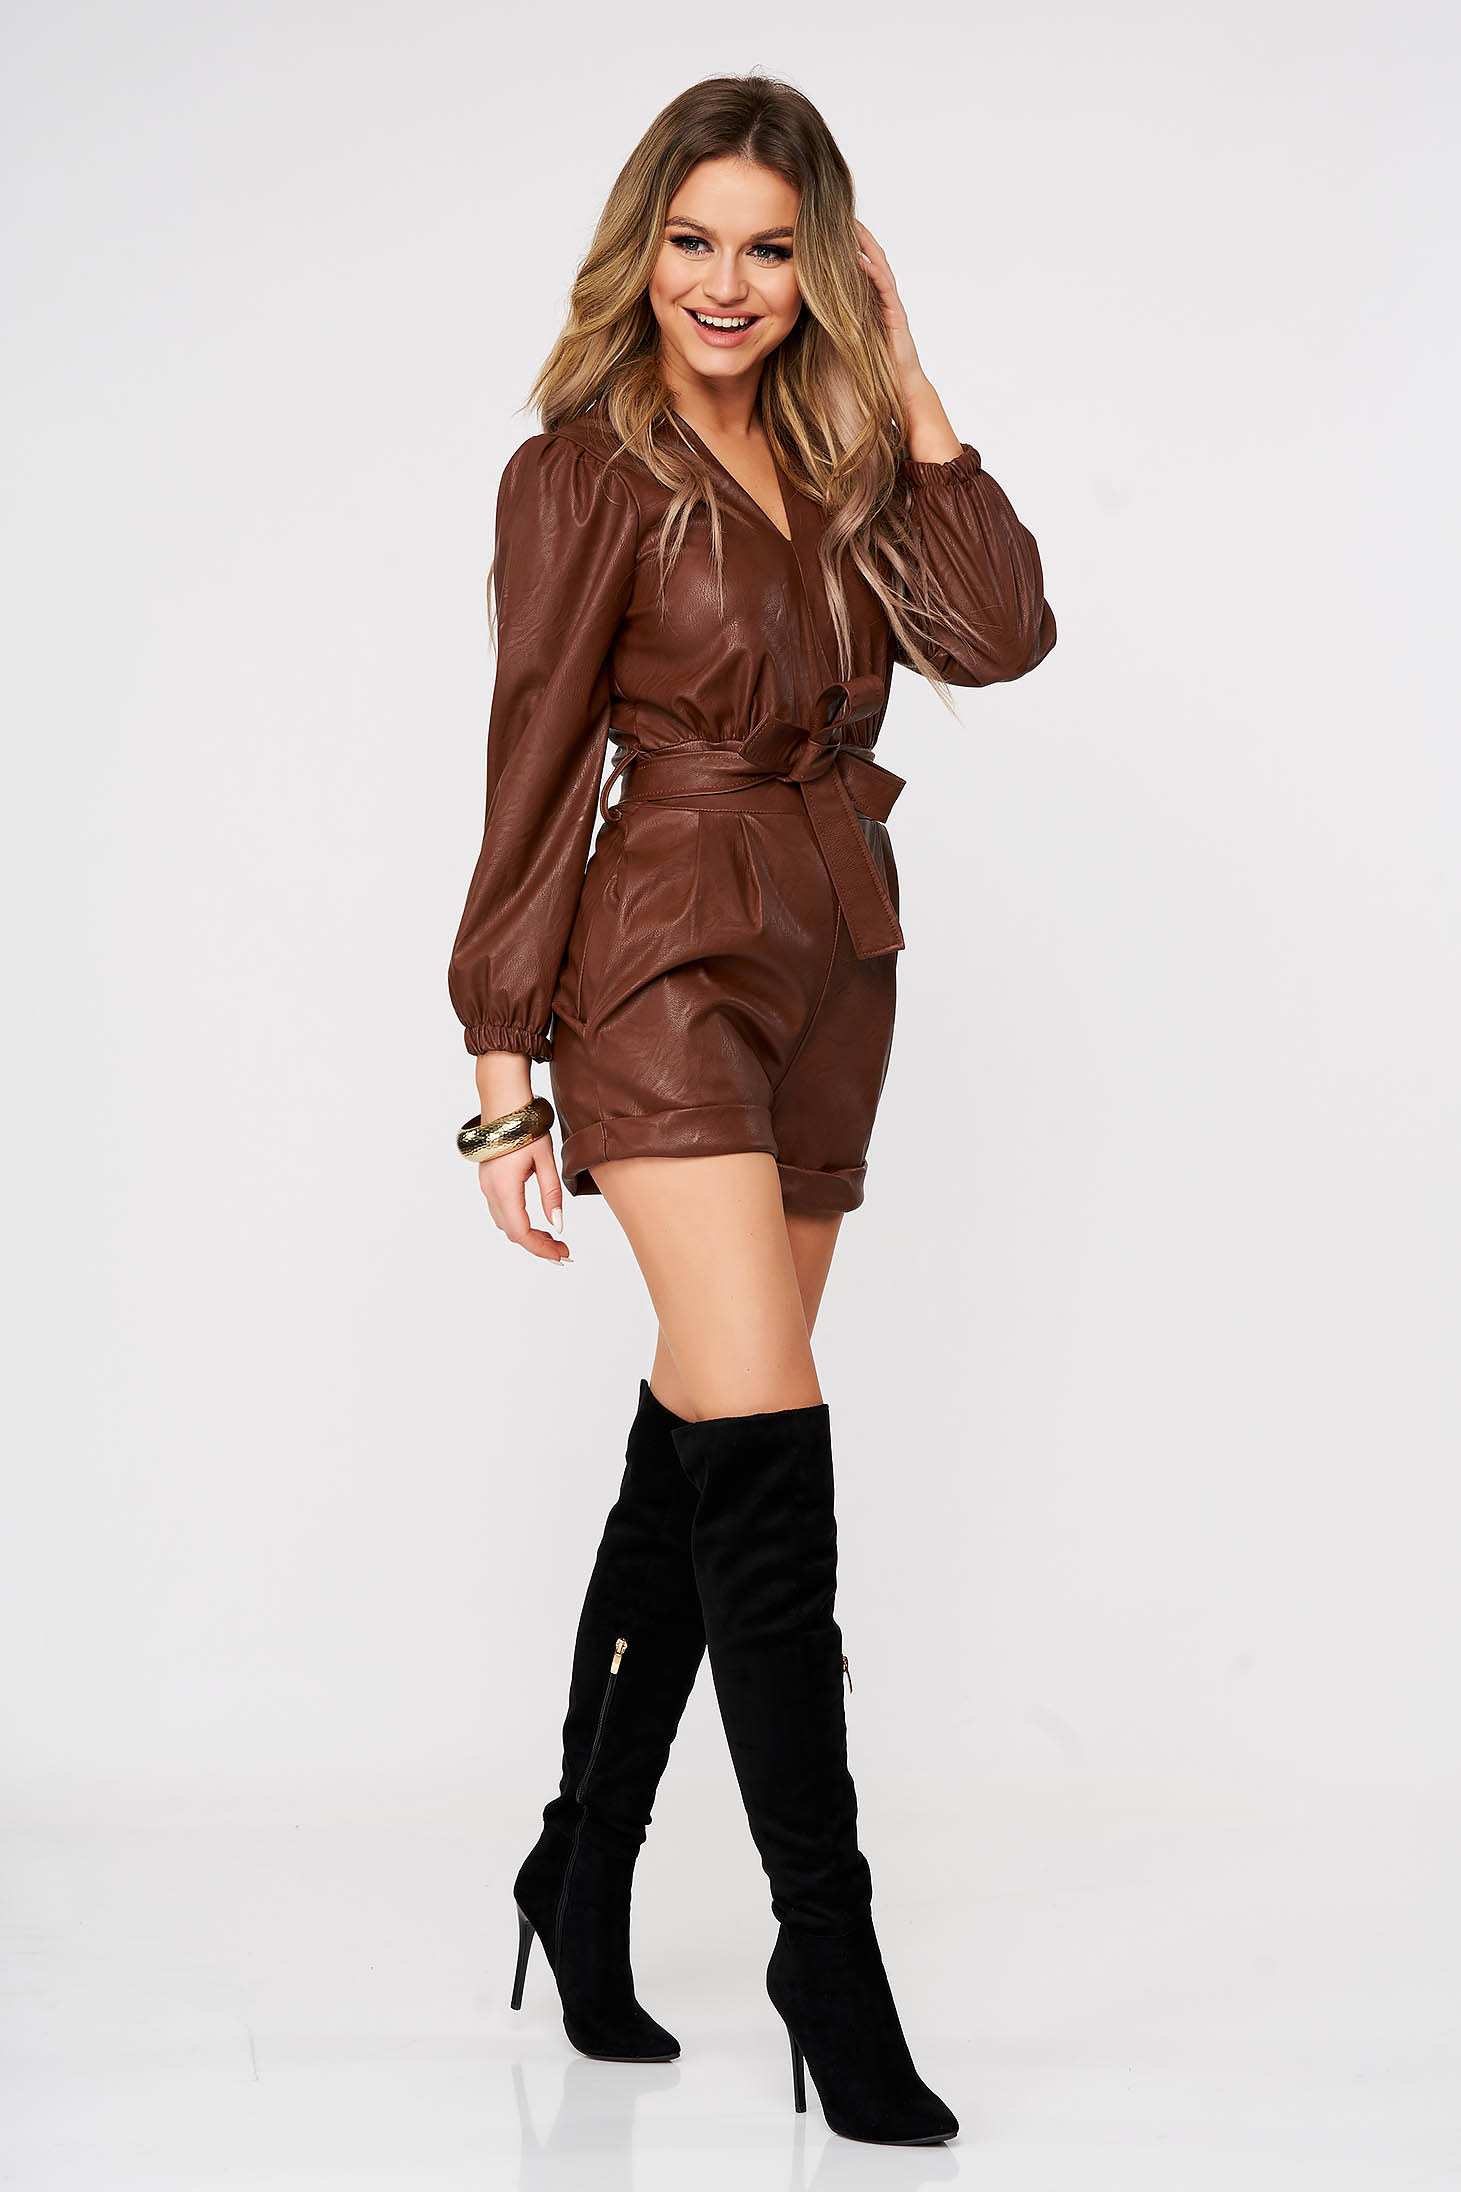 Brown jumpsuit from ecological leather with puffed sleeves women`s shorts